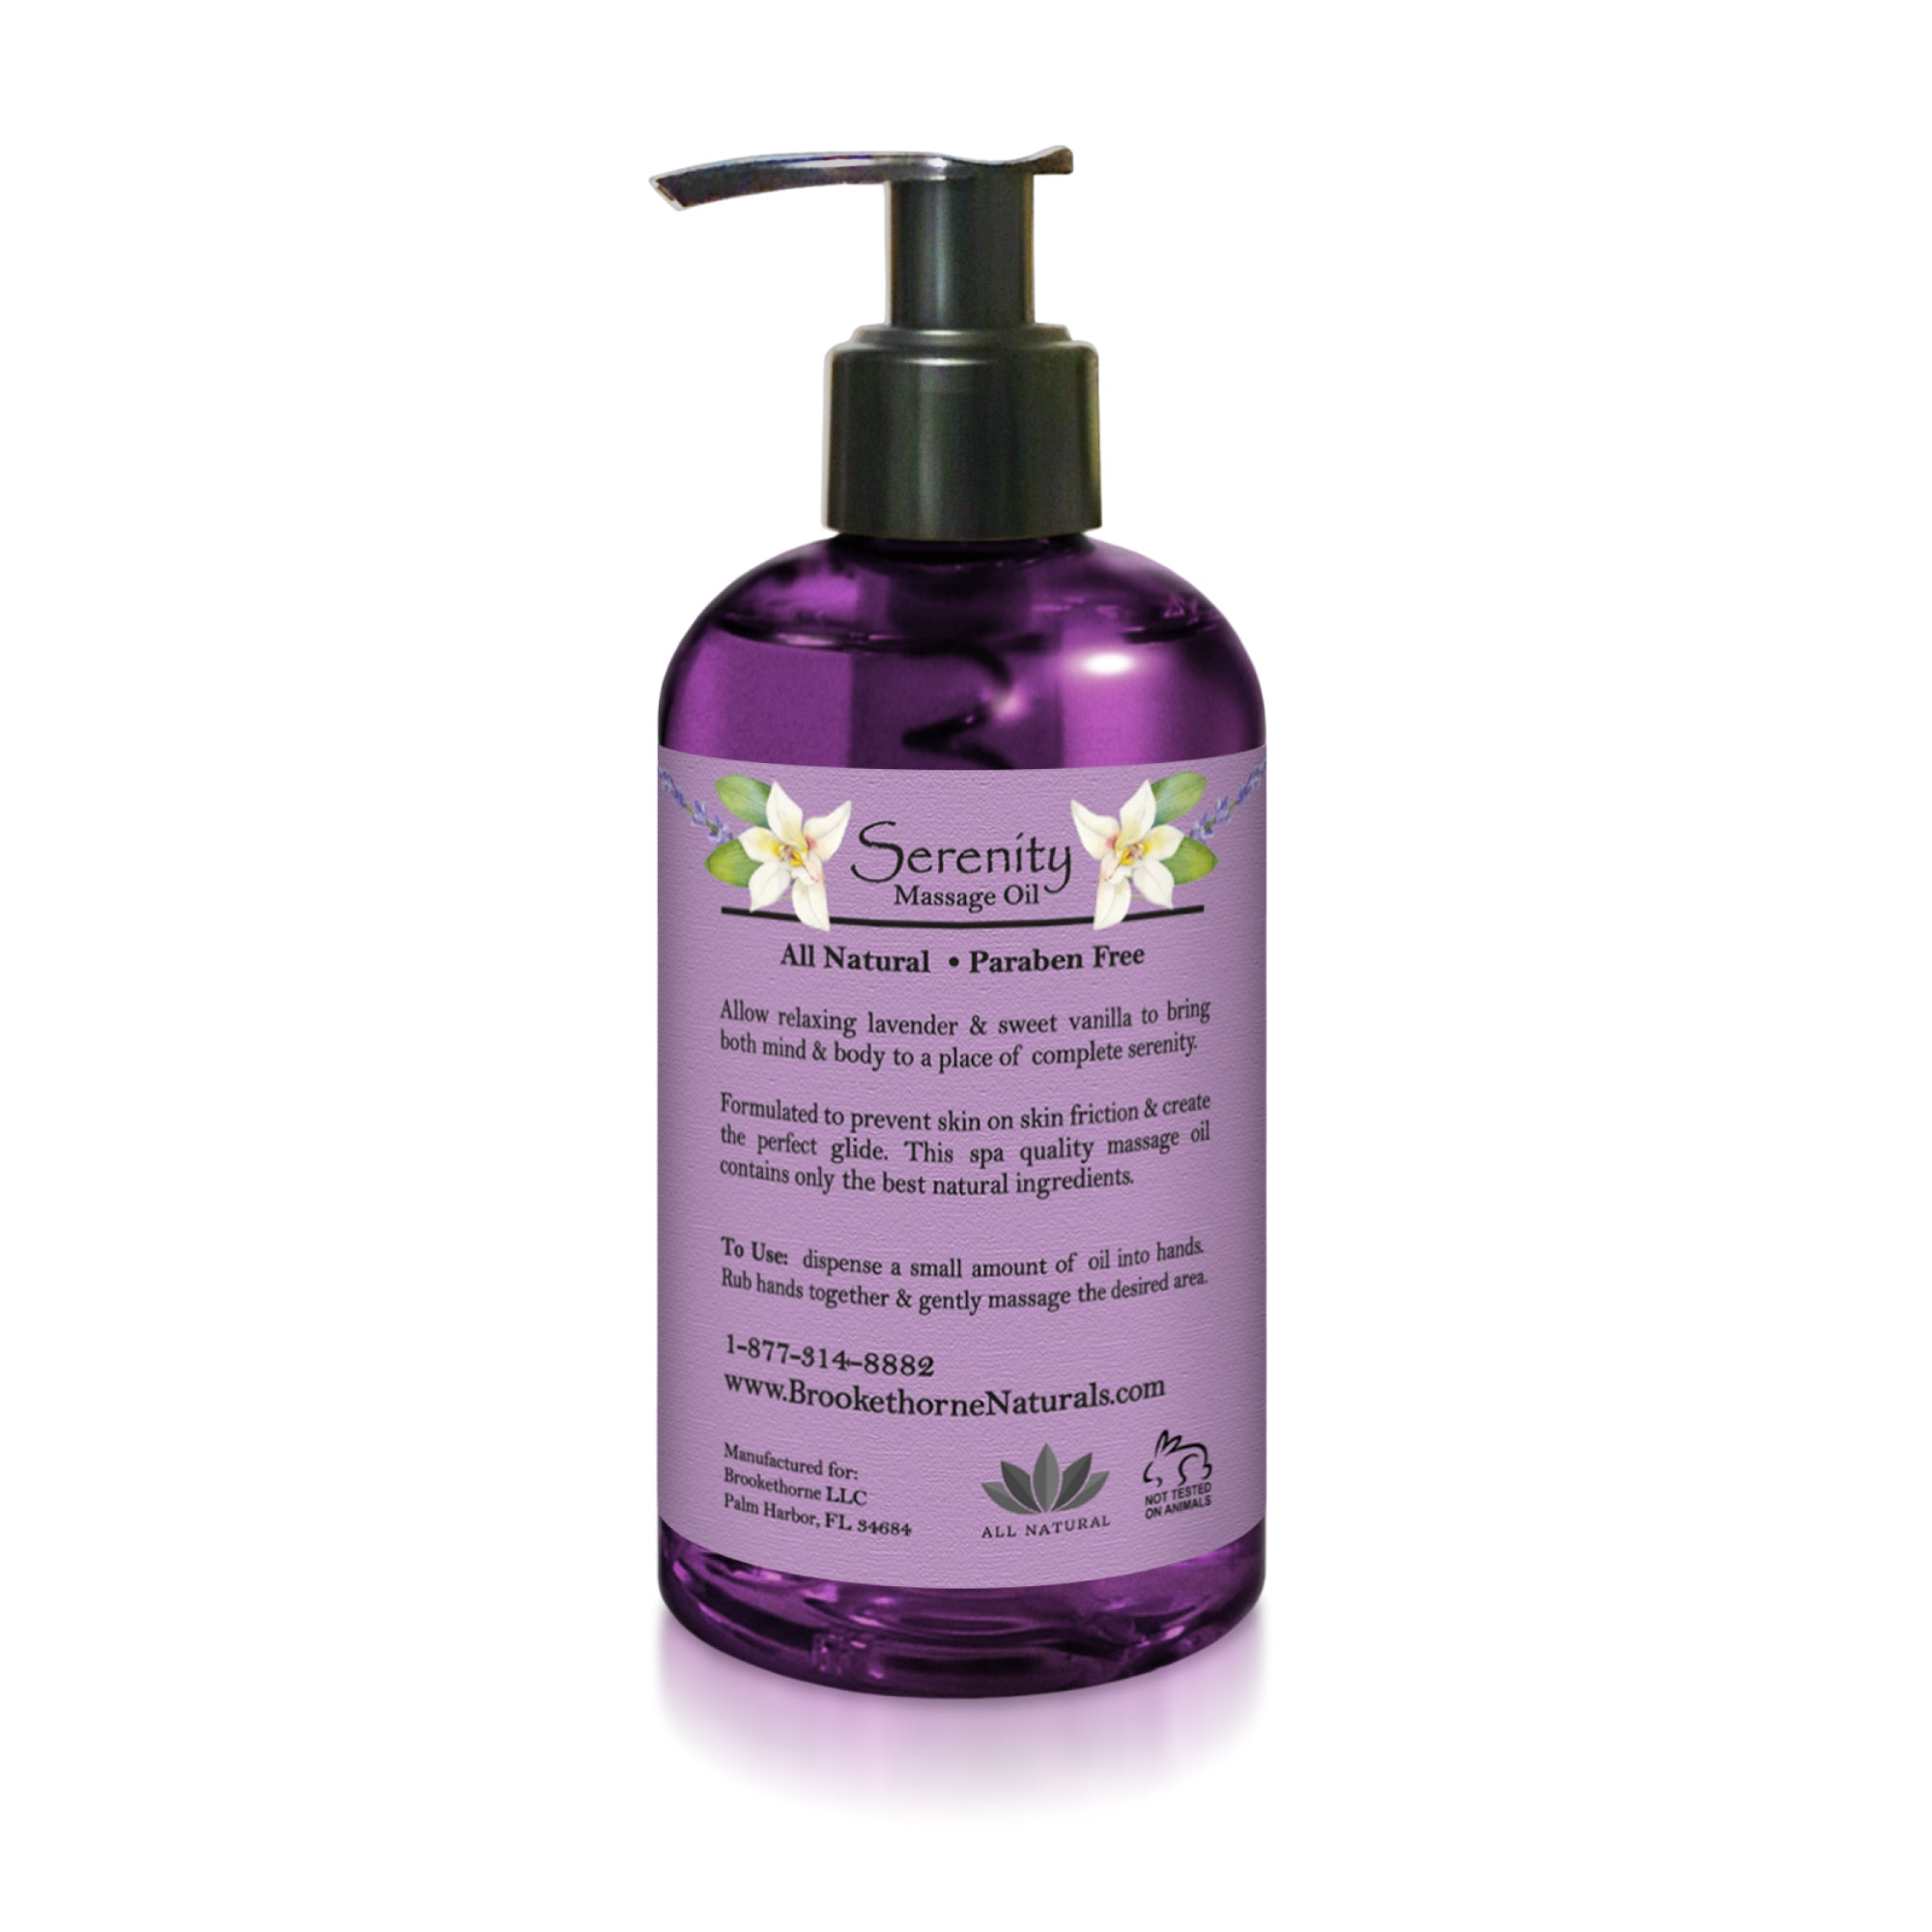 Serenity Massage Oil 8.5 Fl Oz